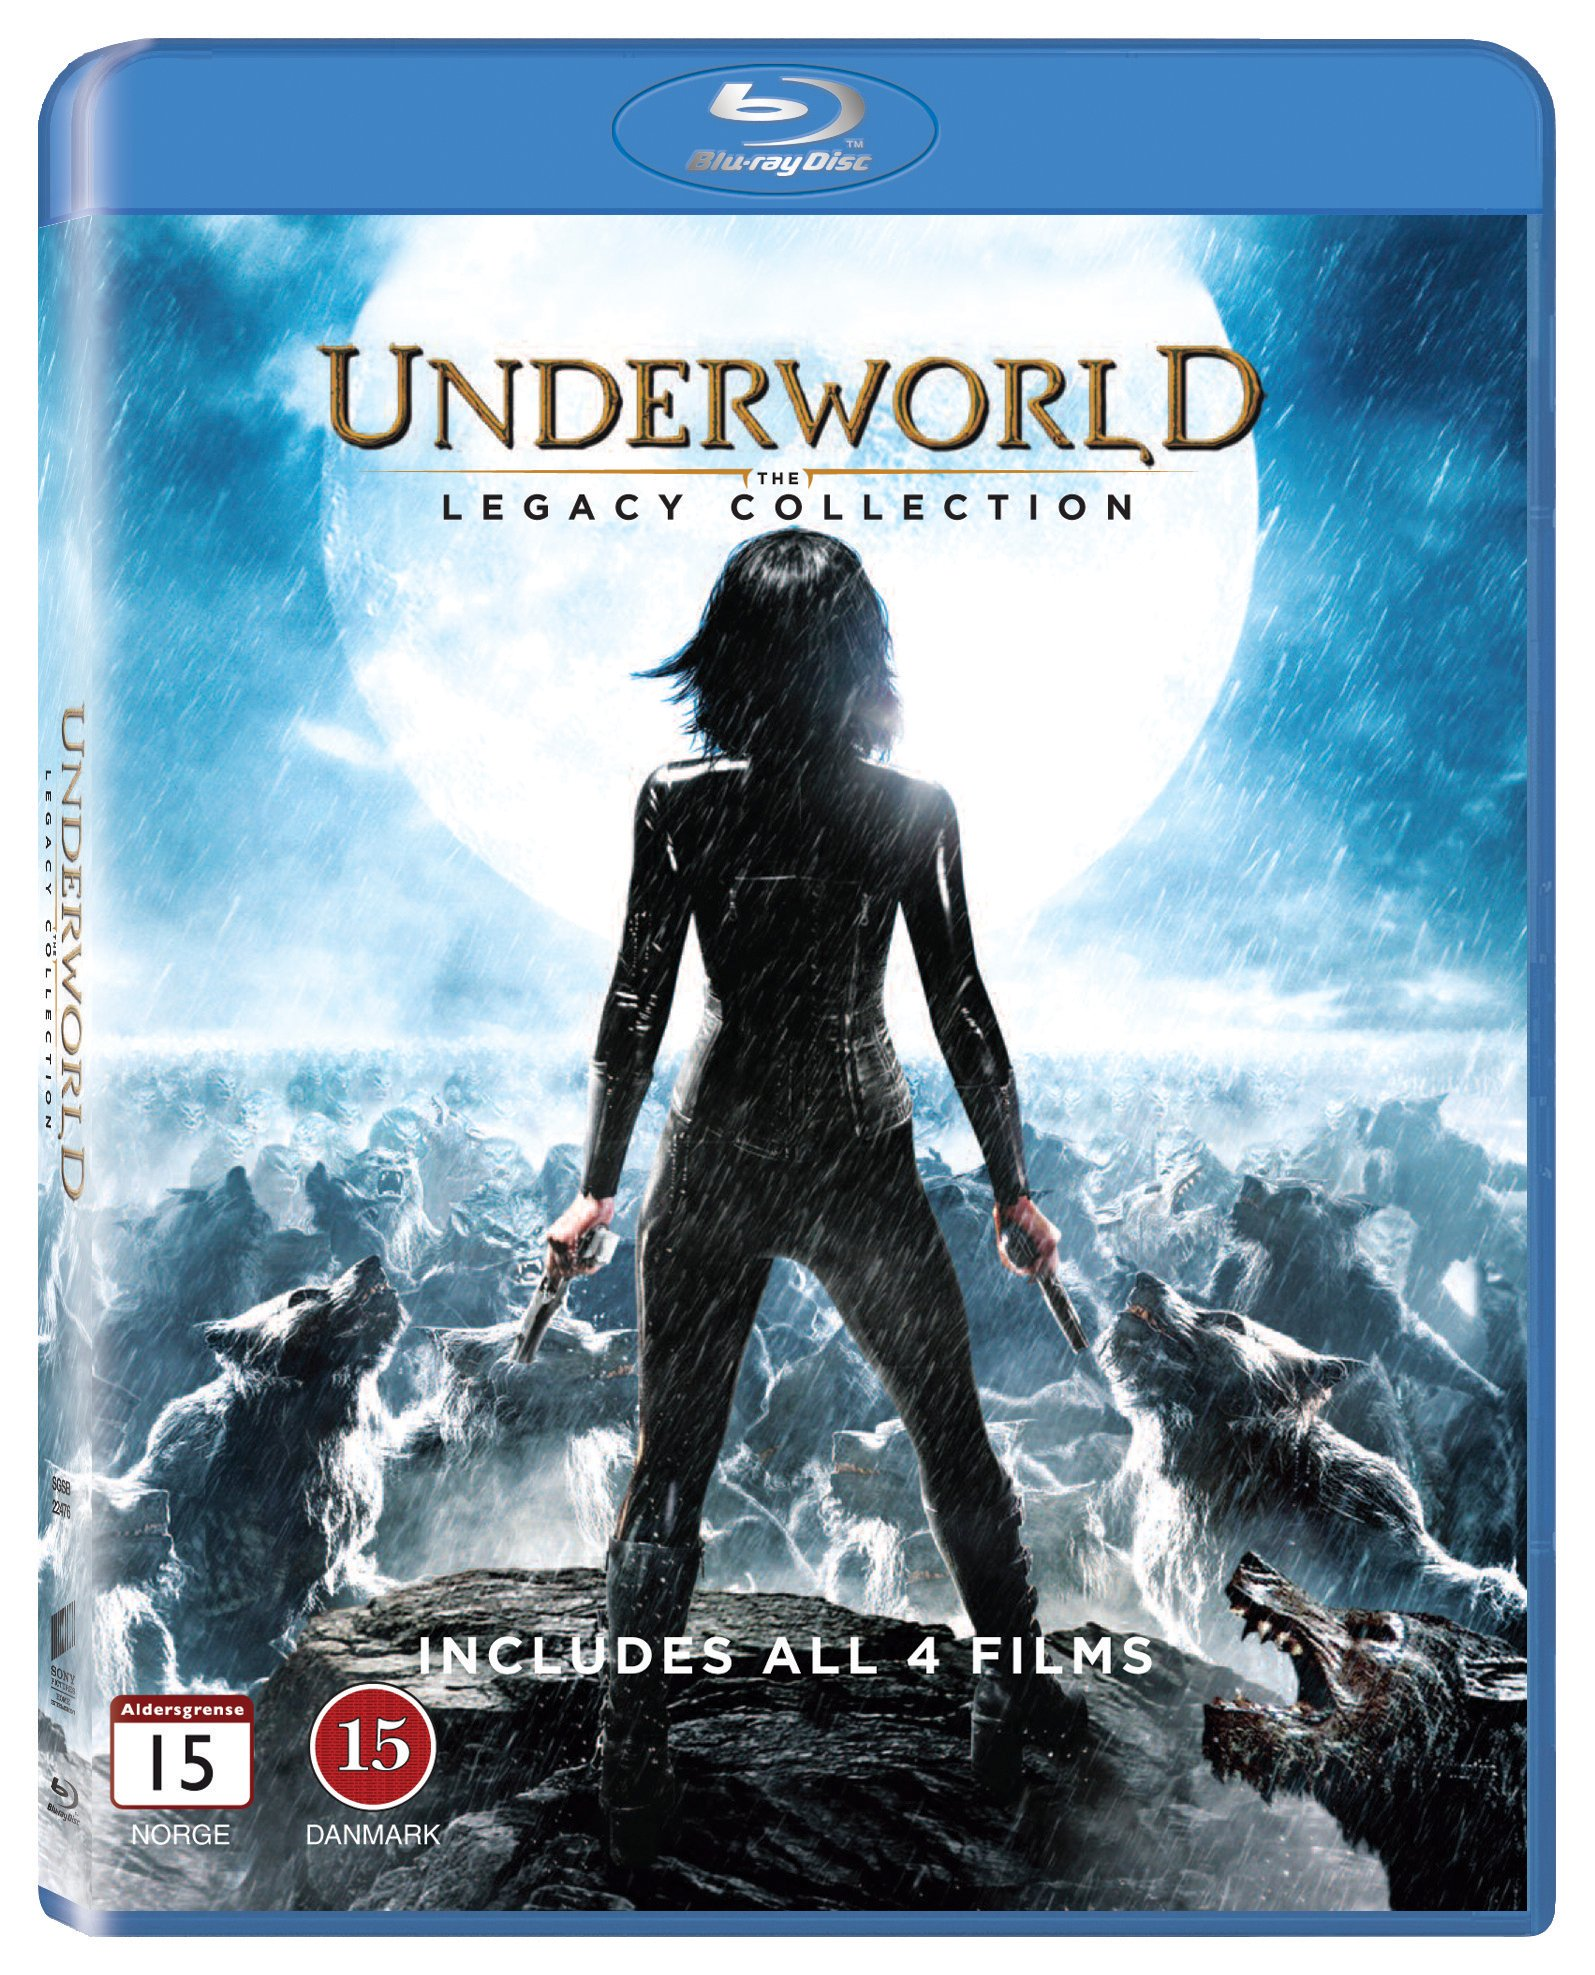 Underworld the legacy collection